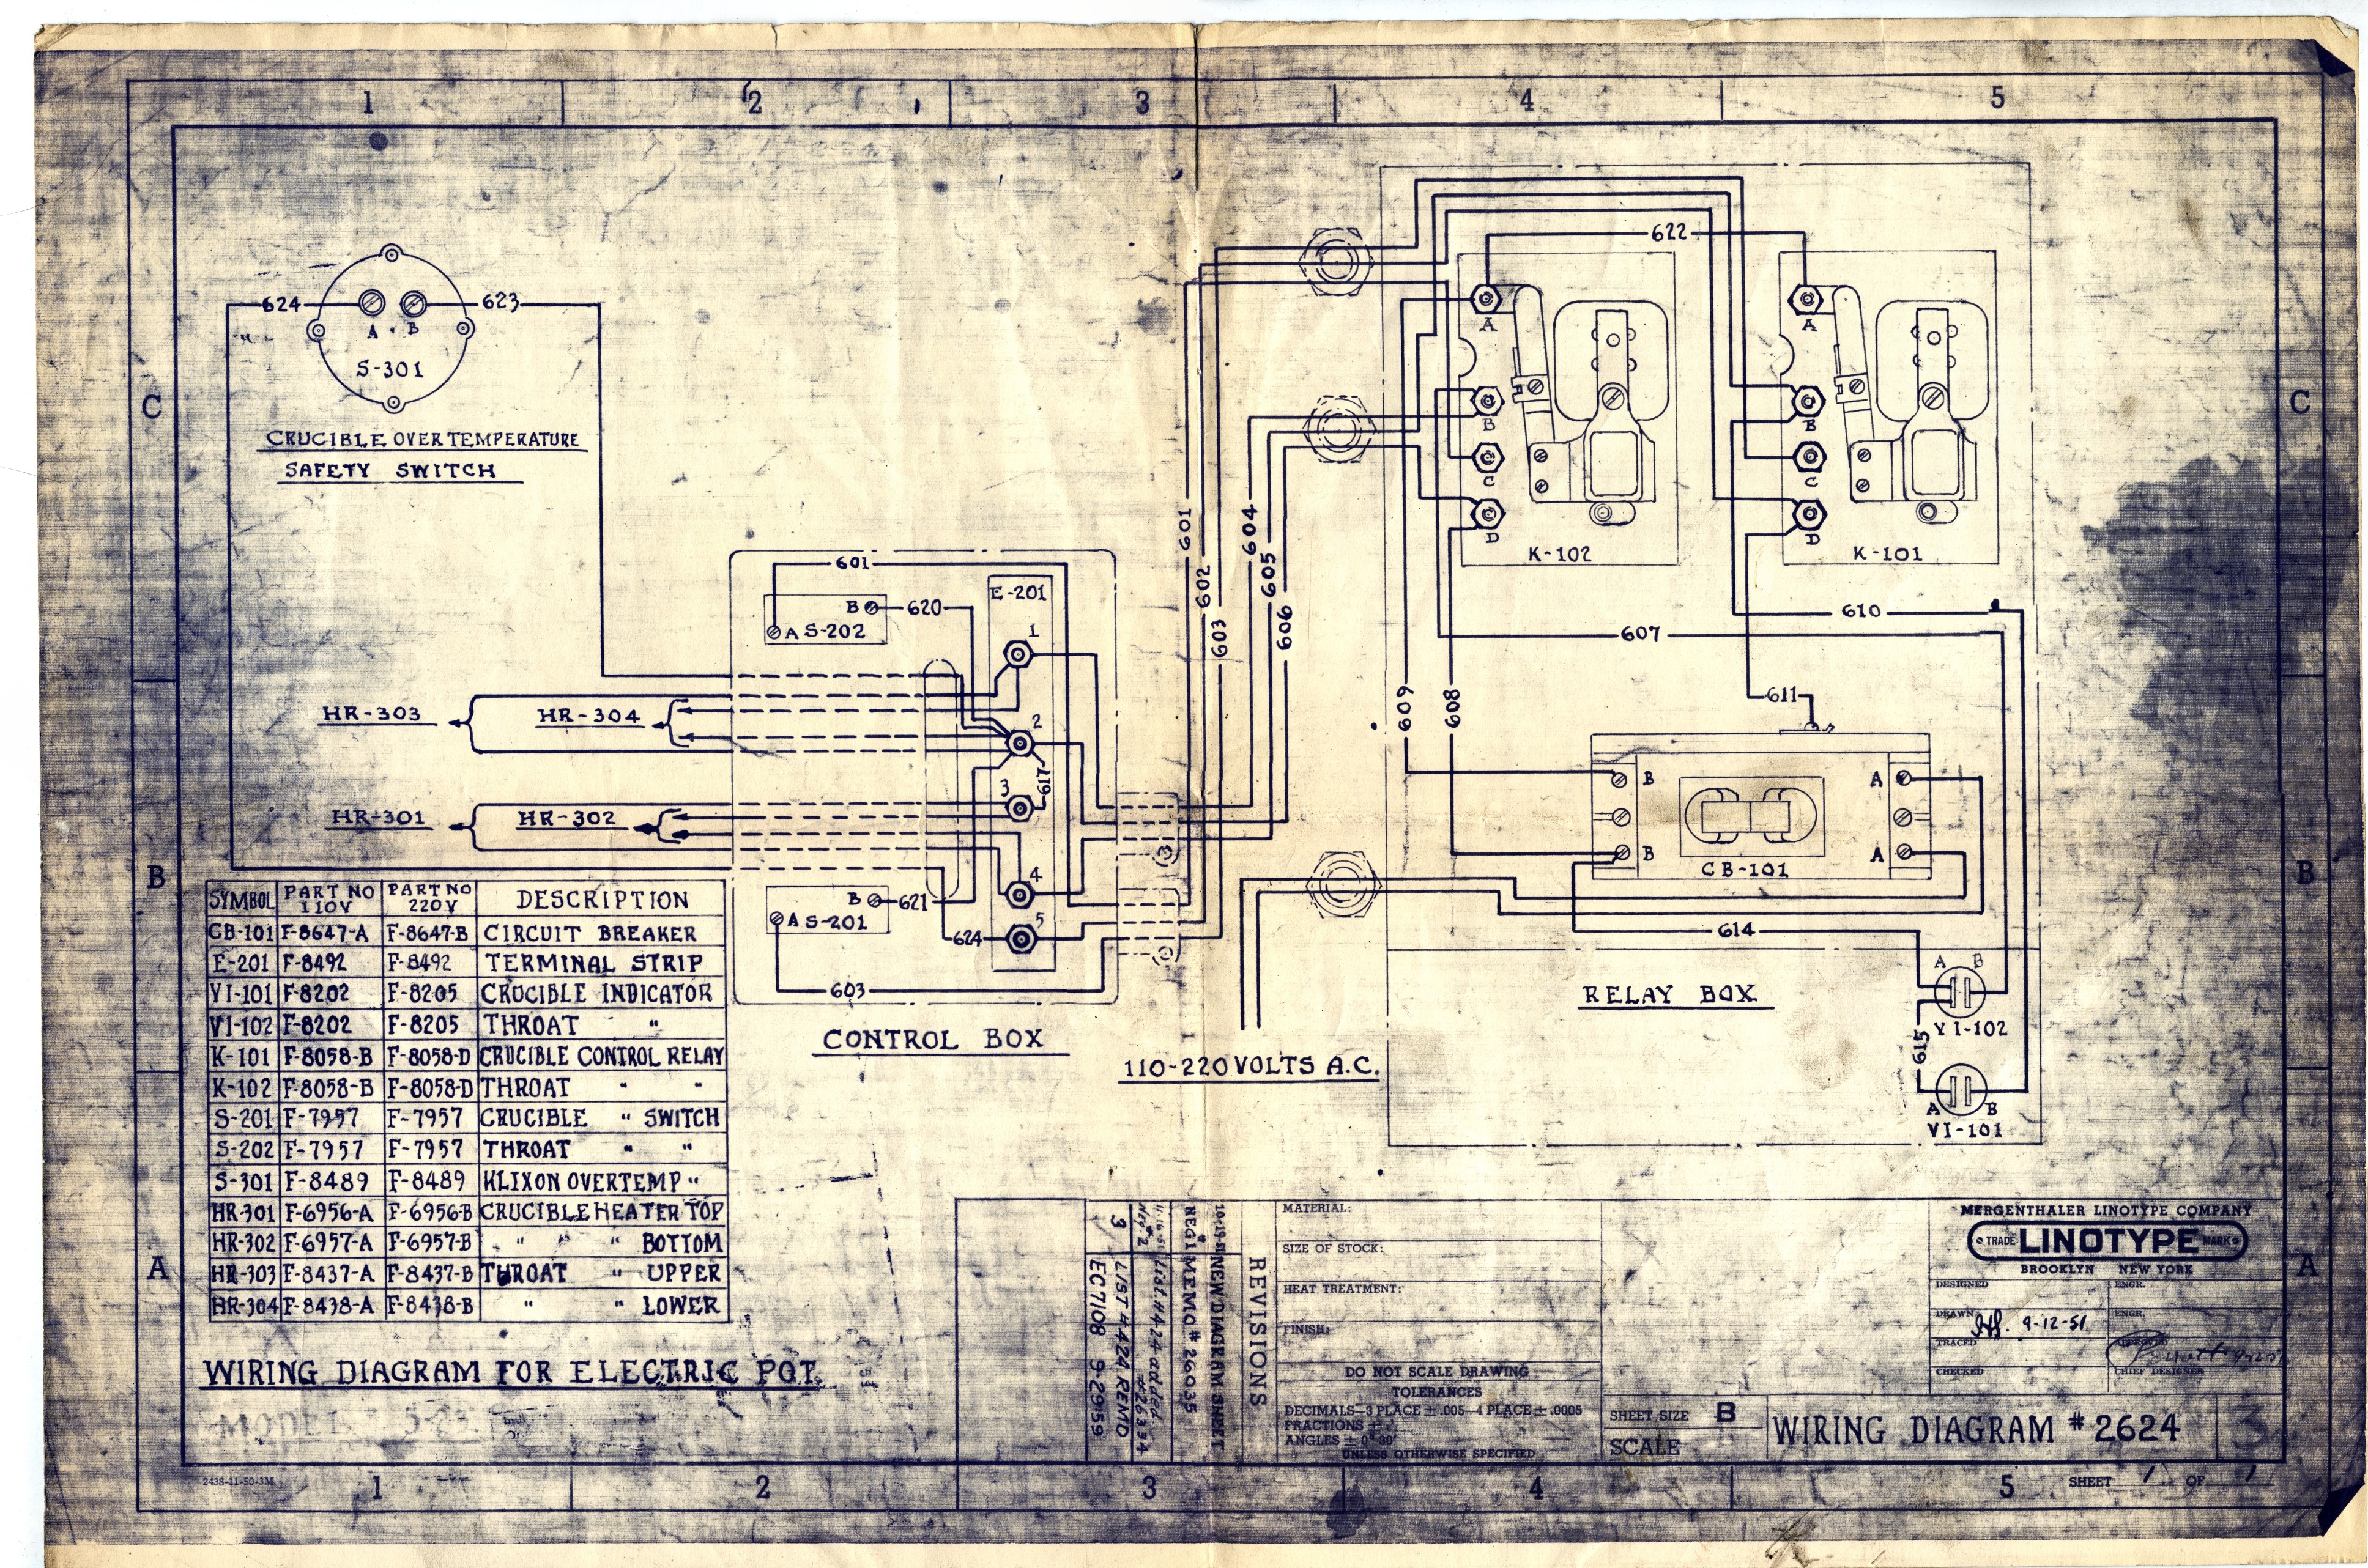 Mergenthaler Linotype Wiring Diagrams Electrical 110 To 220 Diagram For Electric Pot 2624 1 Sheet Brooklyn Ny Company 1951 1959 Drawn 02 12